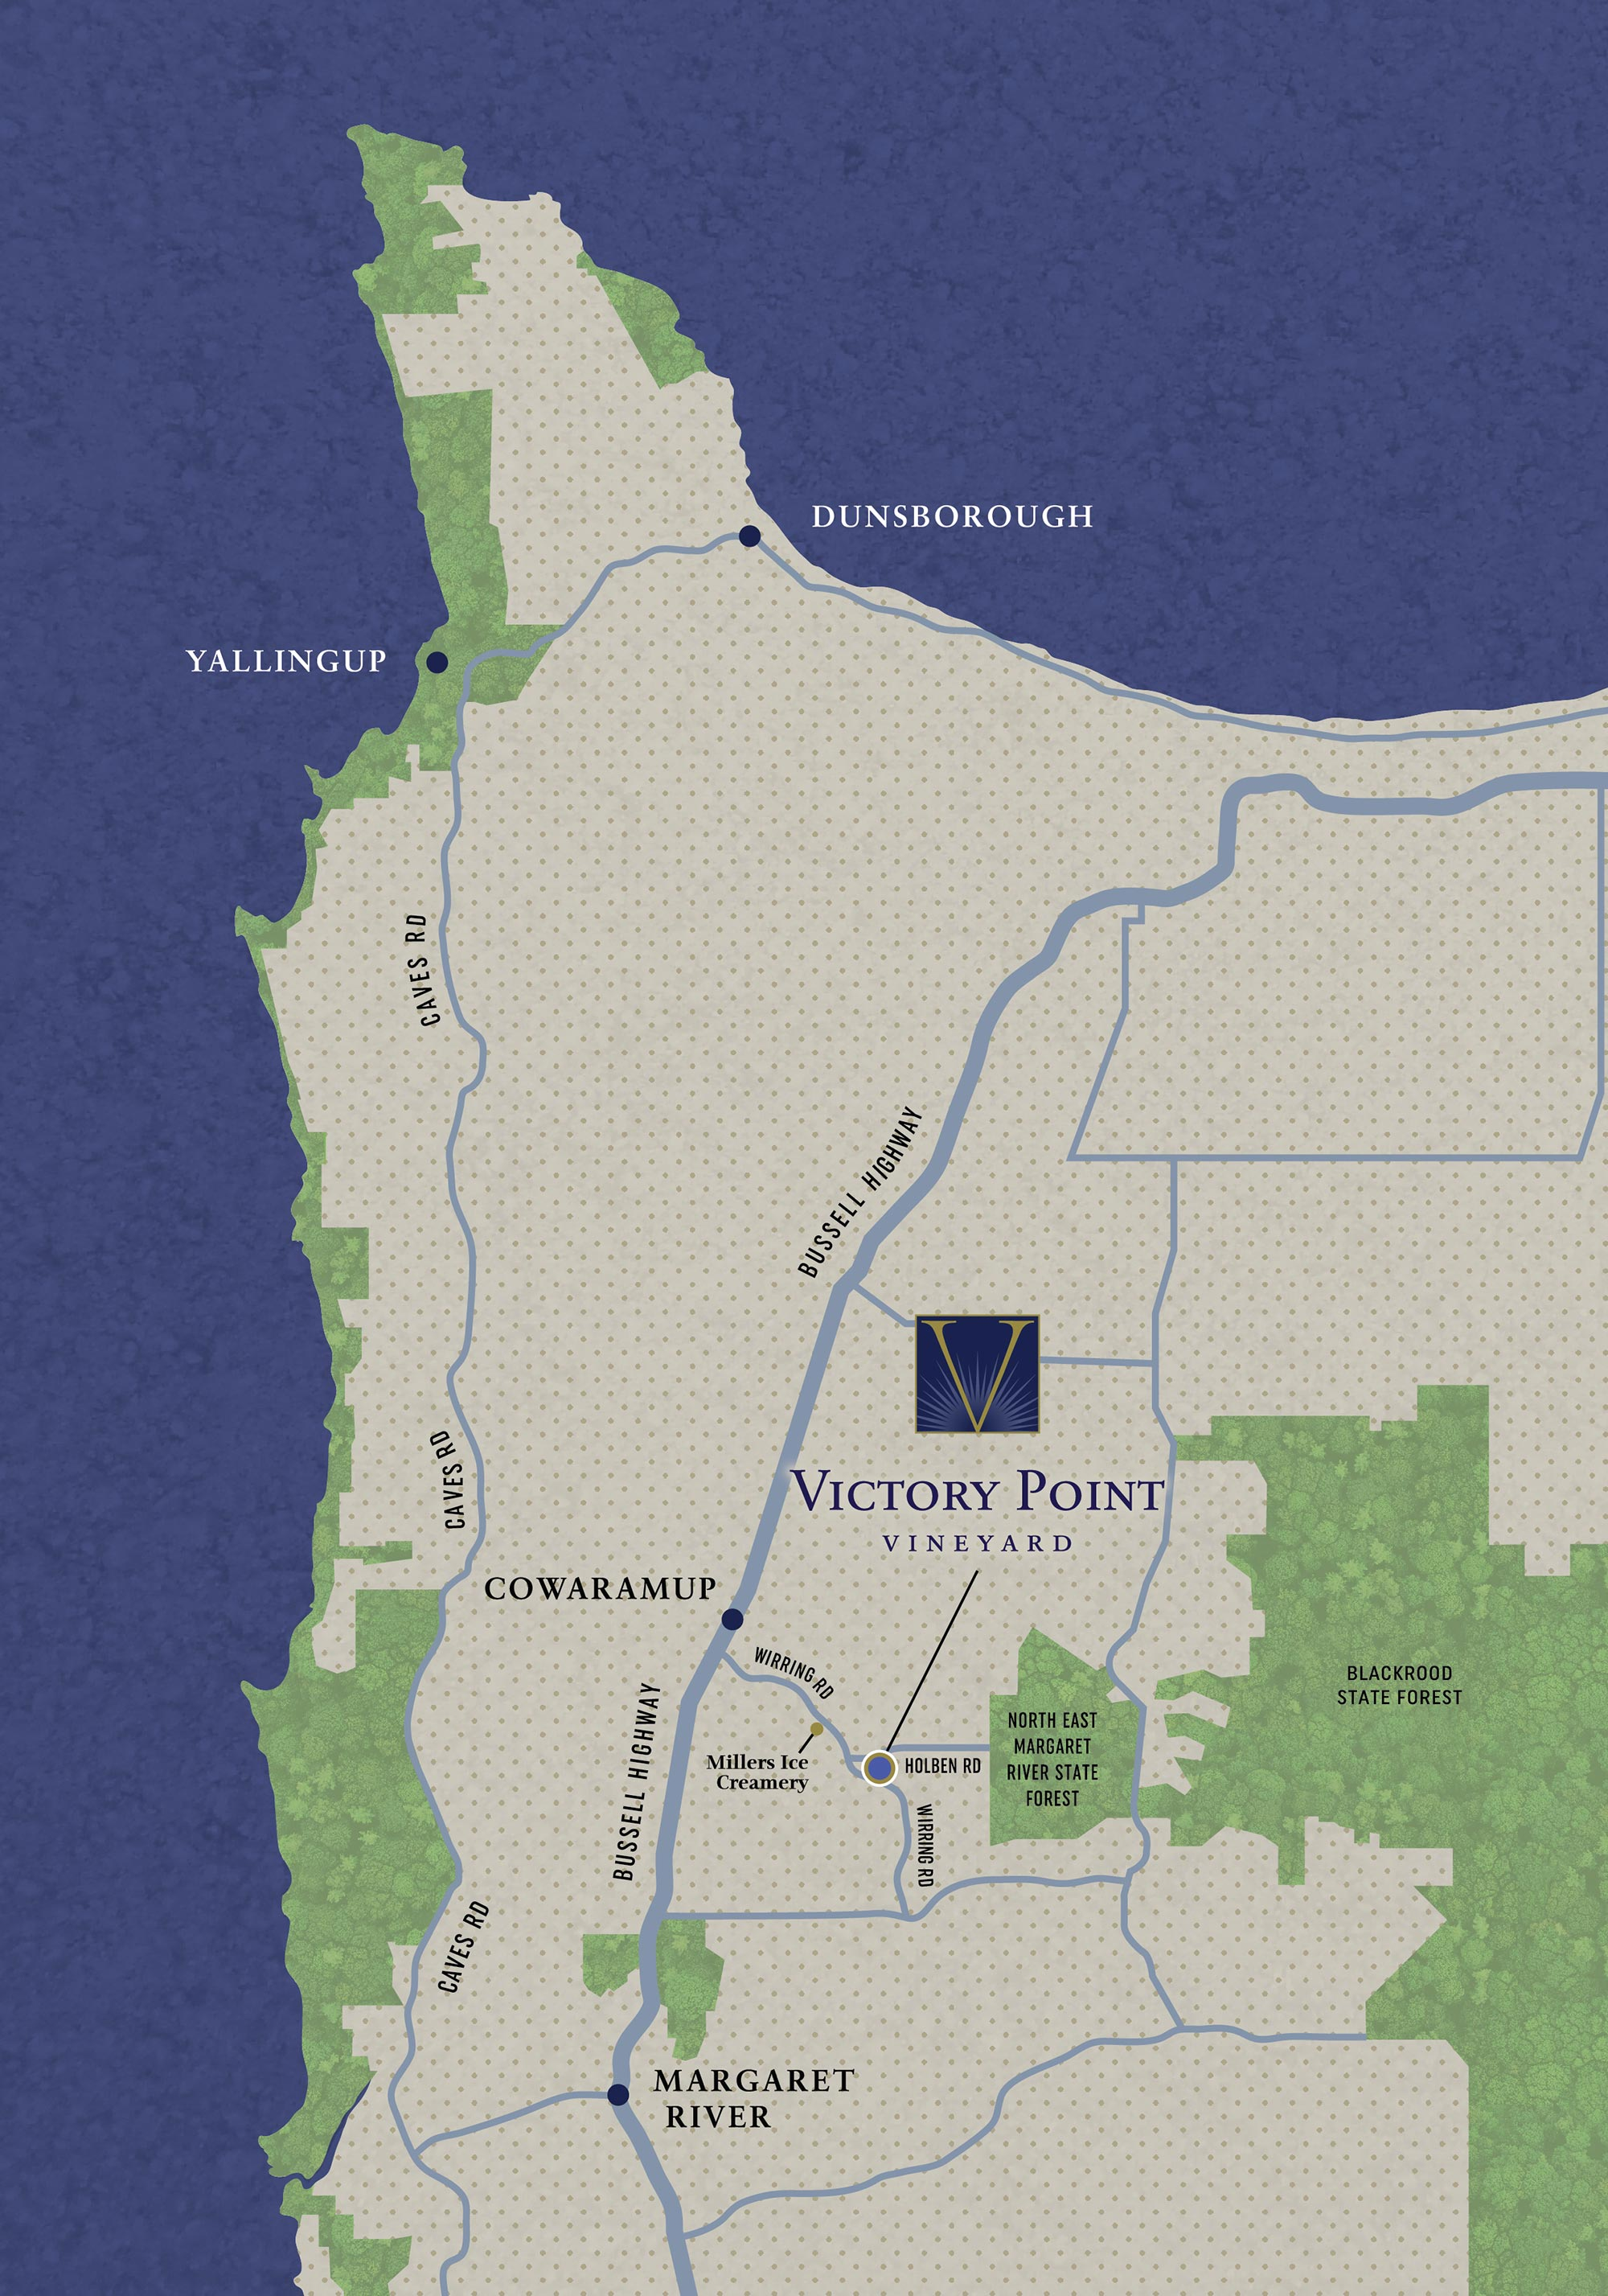 VP-Winery-Location-map-3-web-size